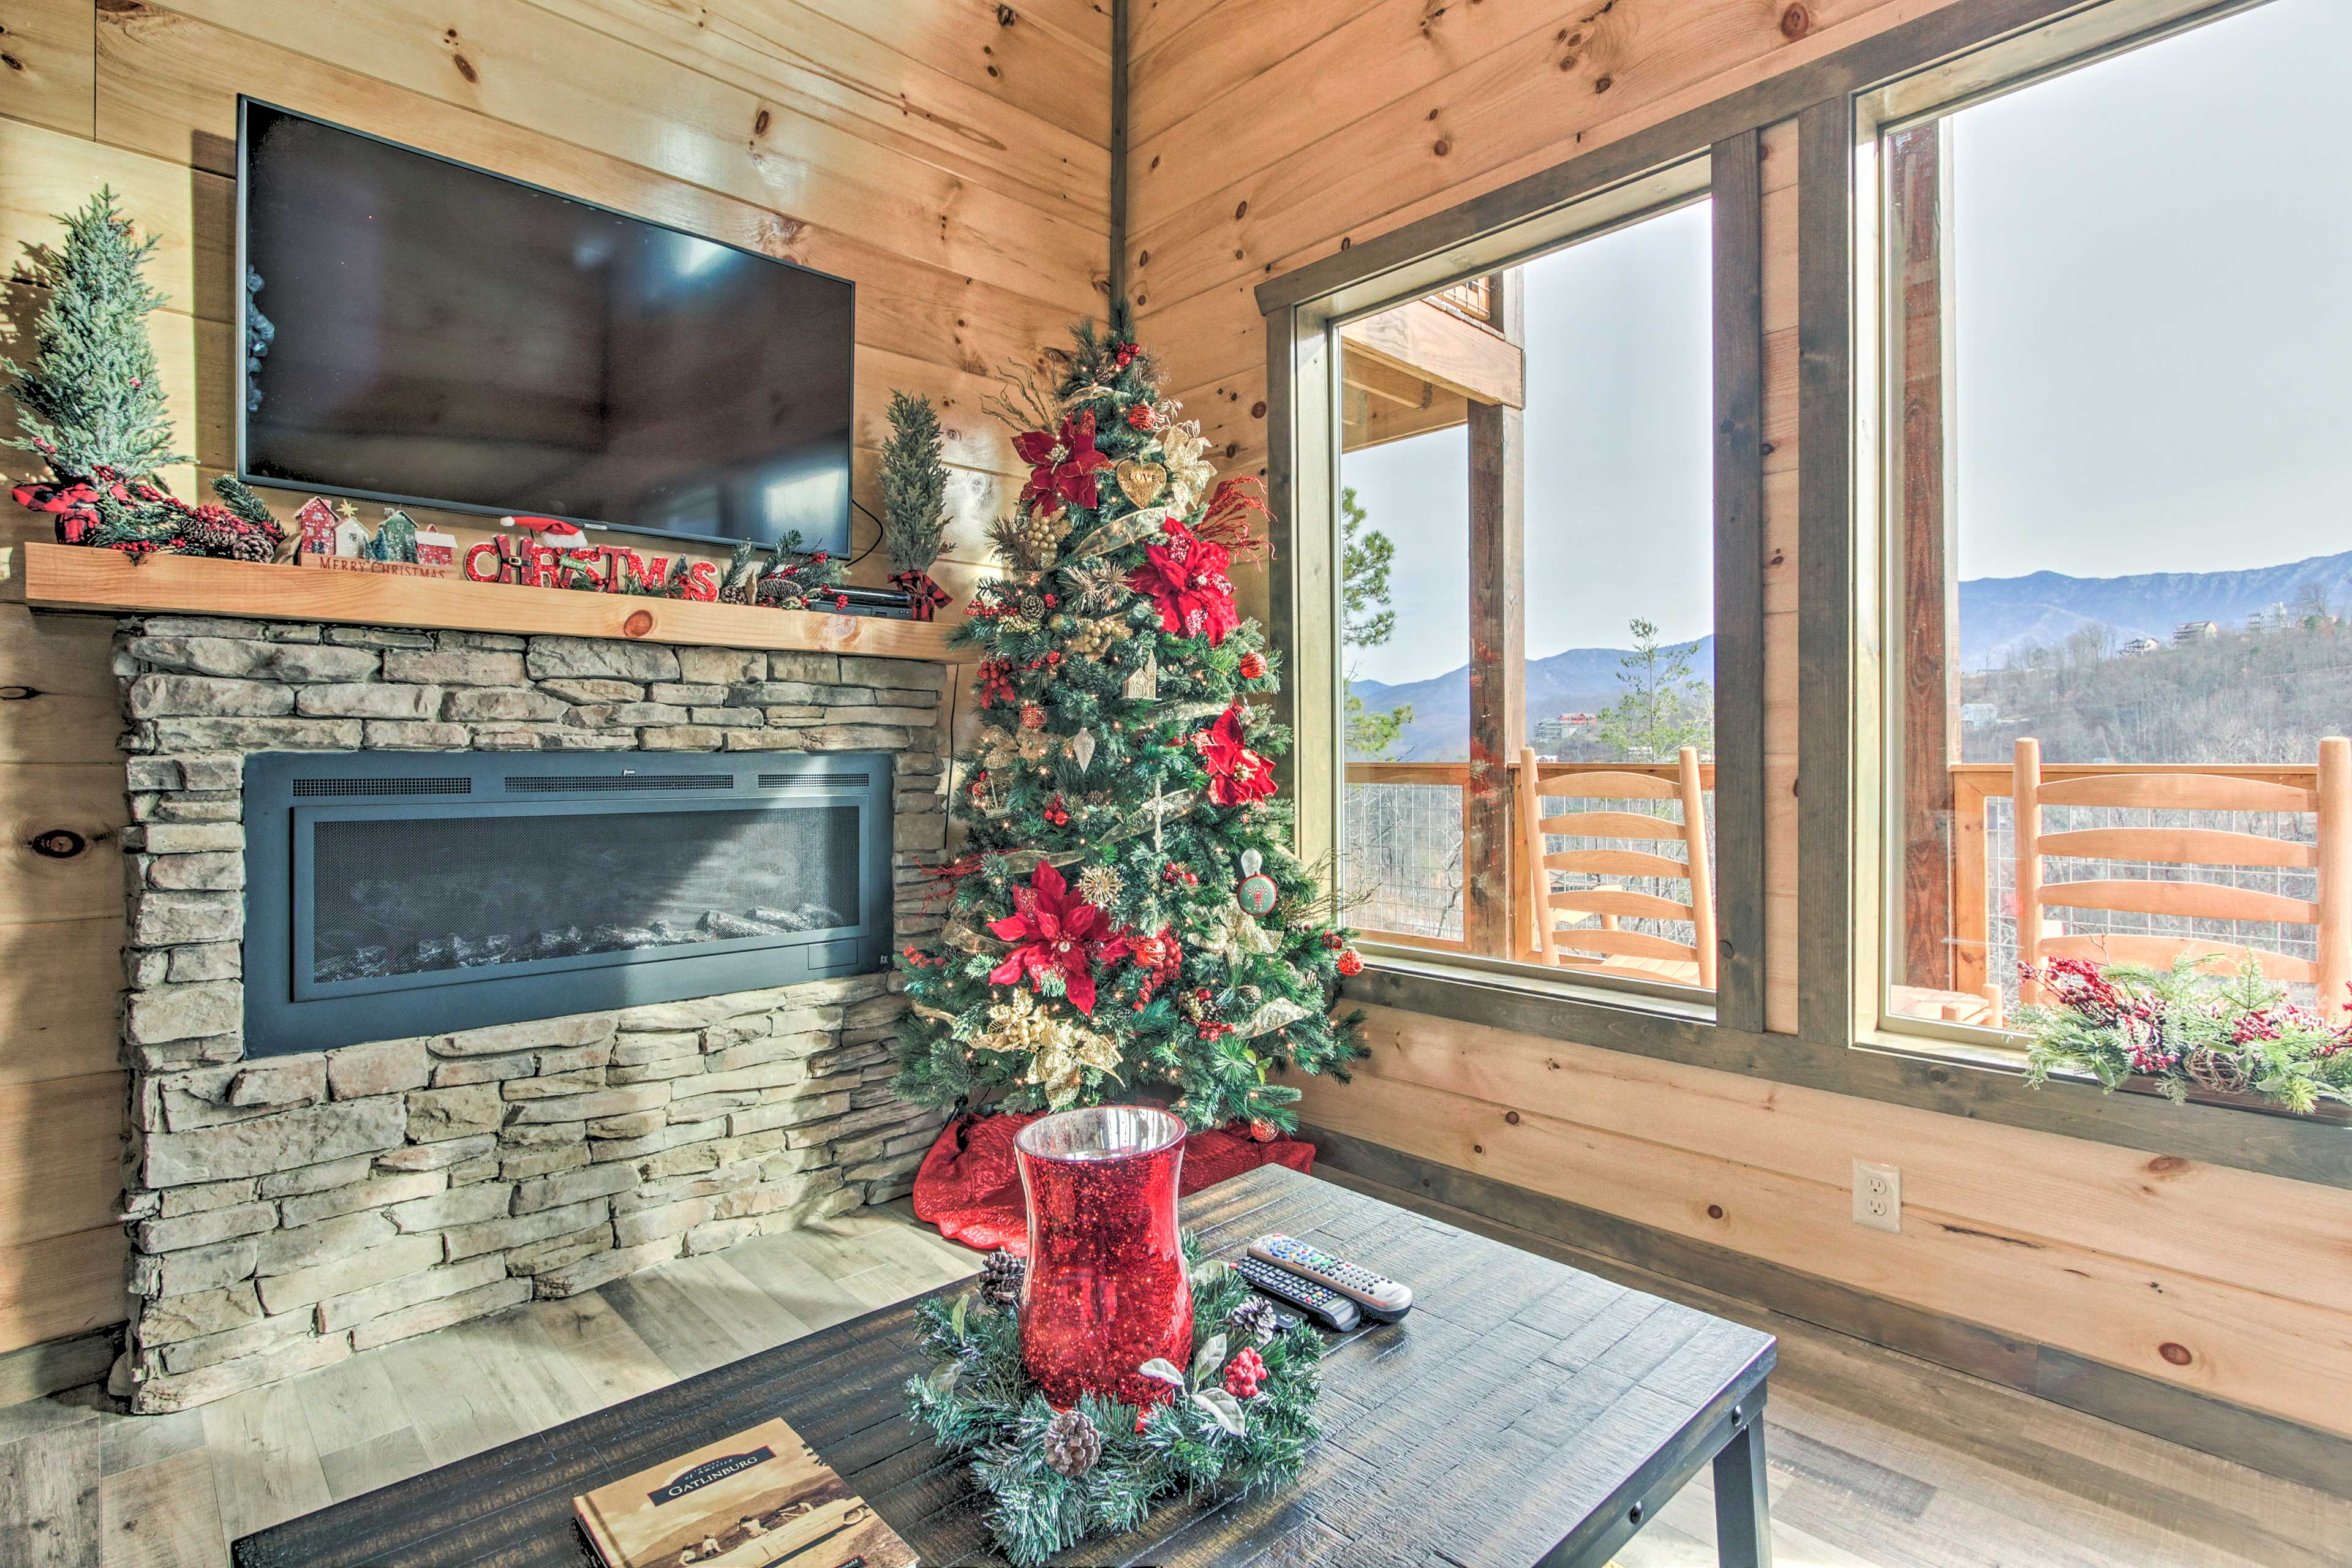 Cozy up to one of the 2 fireplaces.